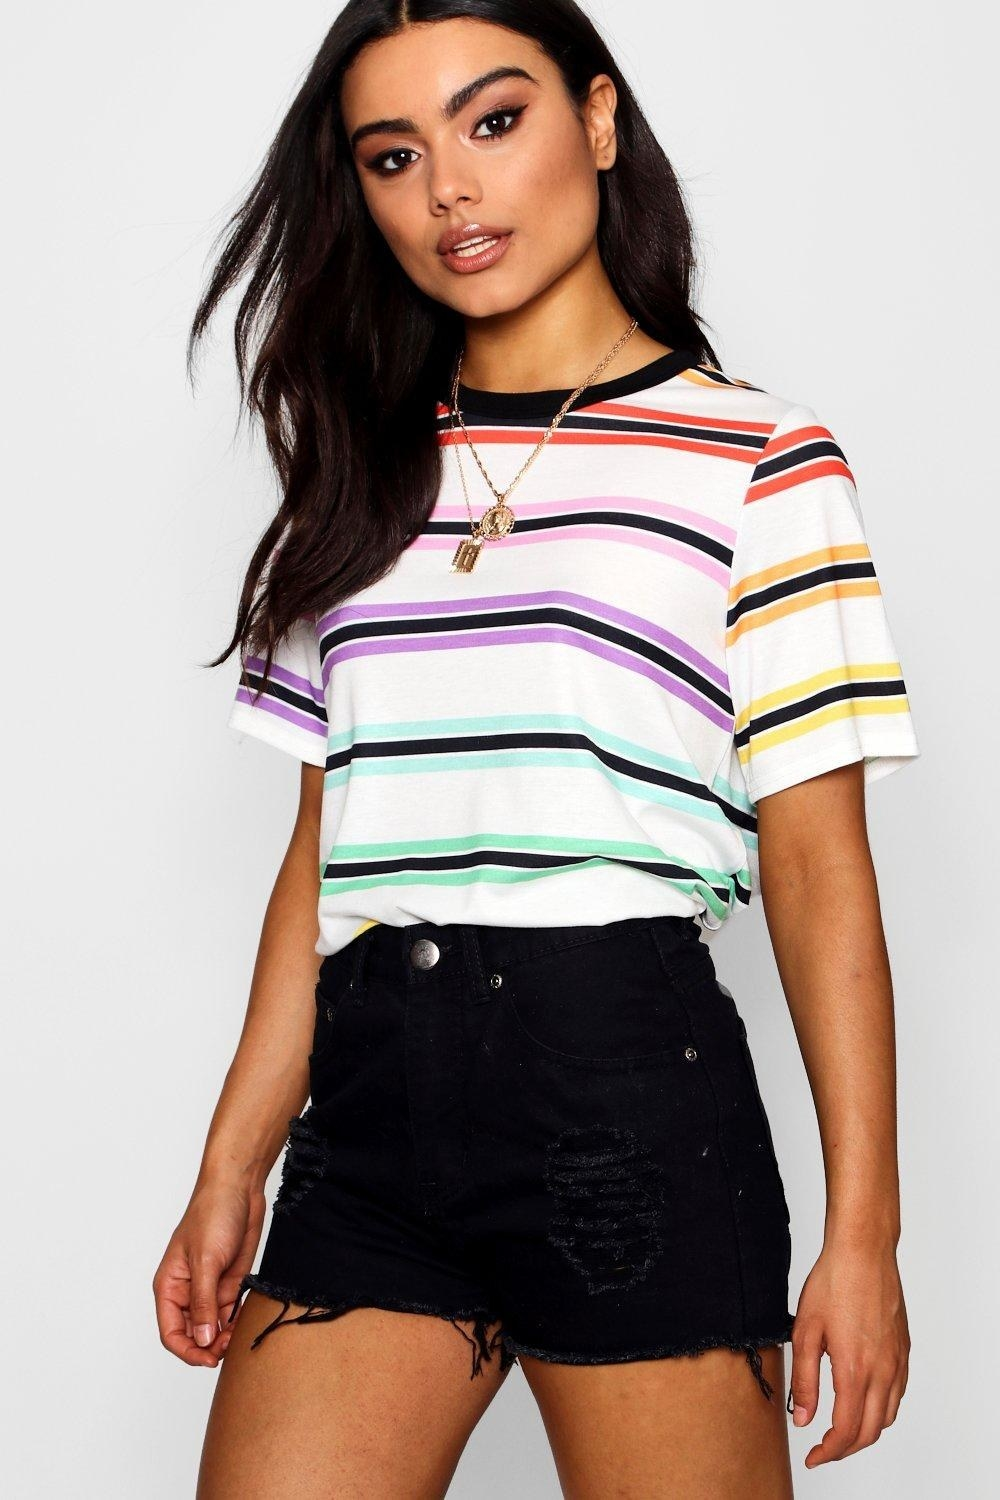 Price: $14 (originally $24, available in sizes S–XL)